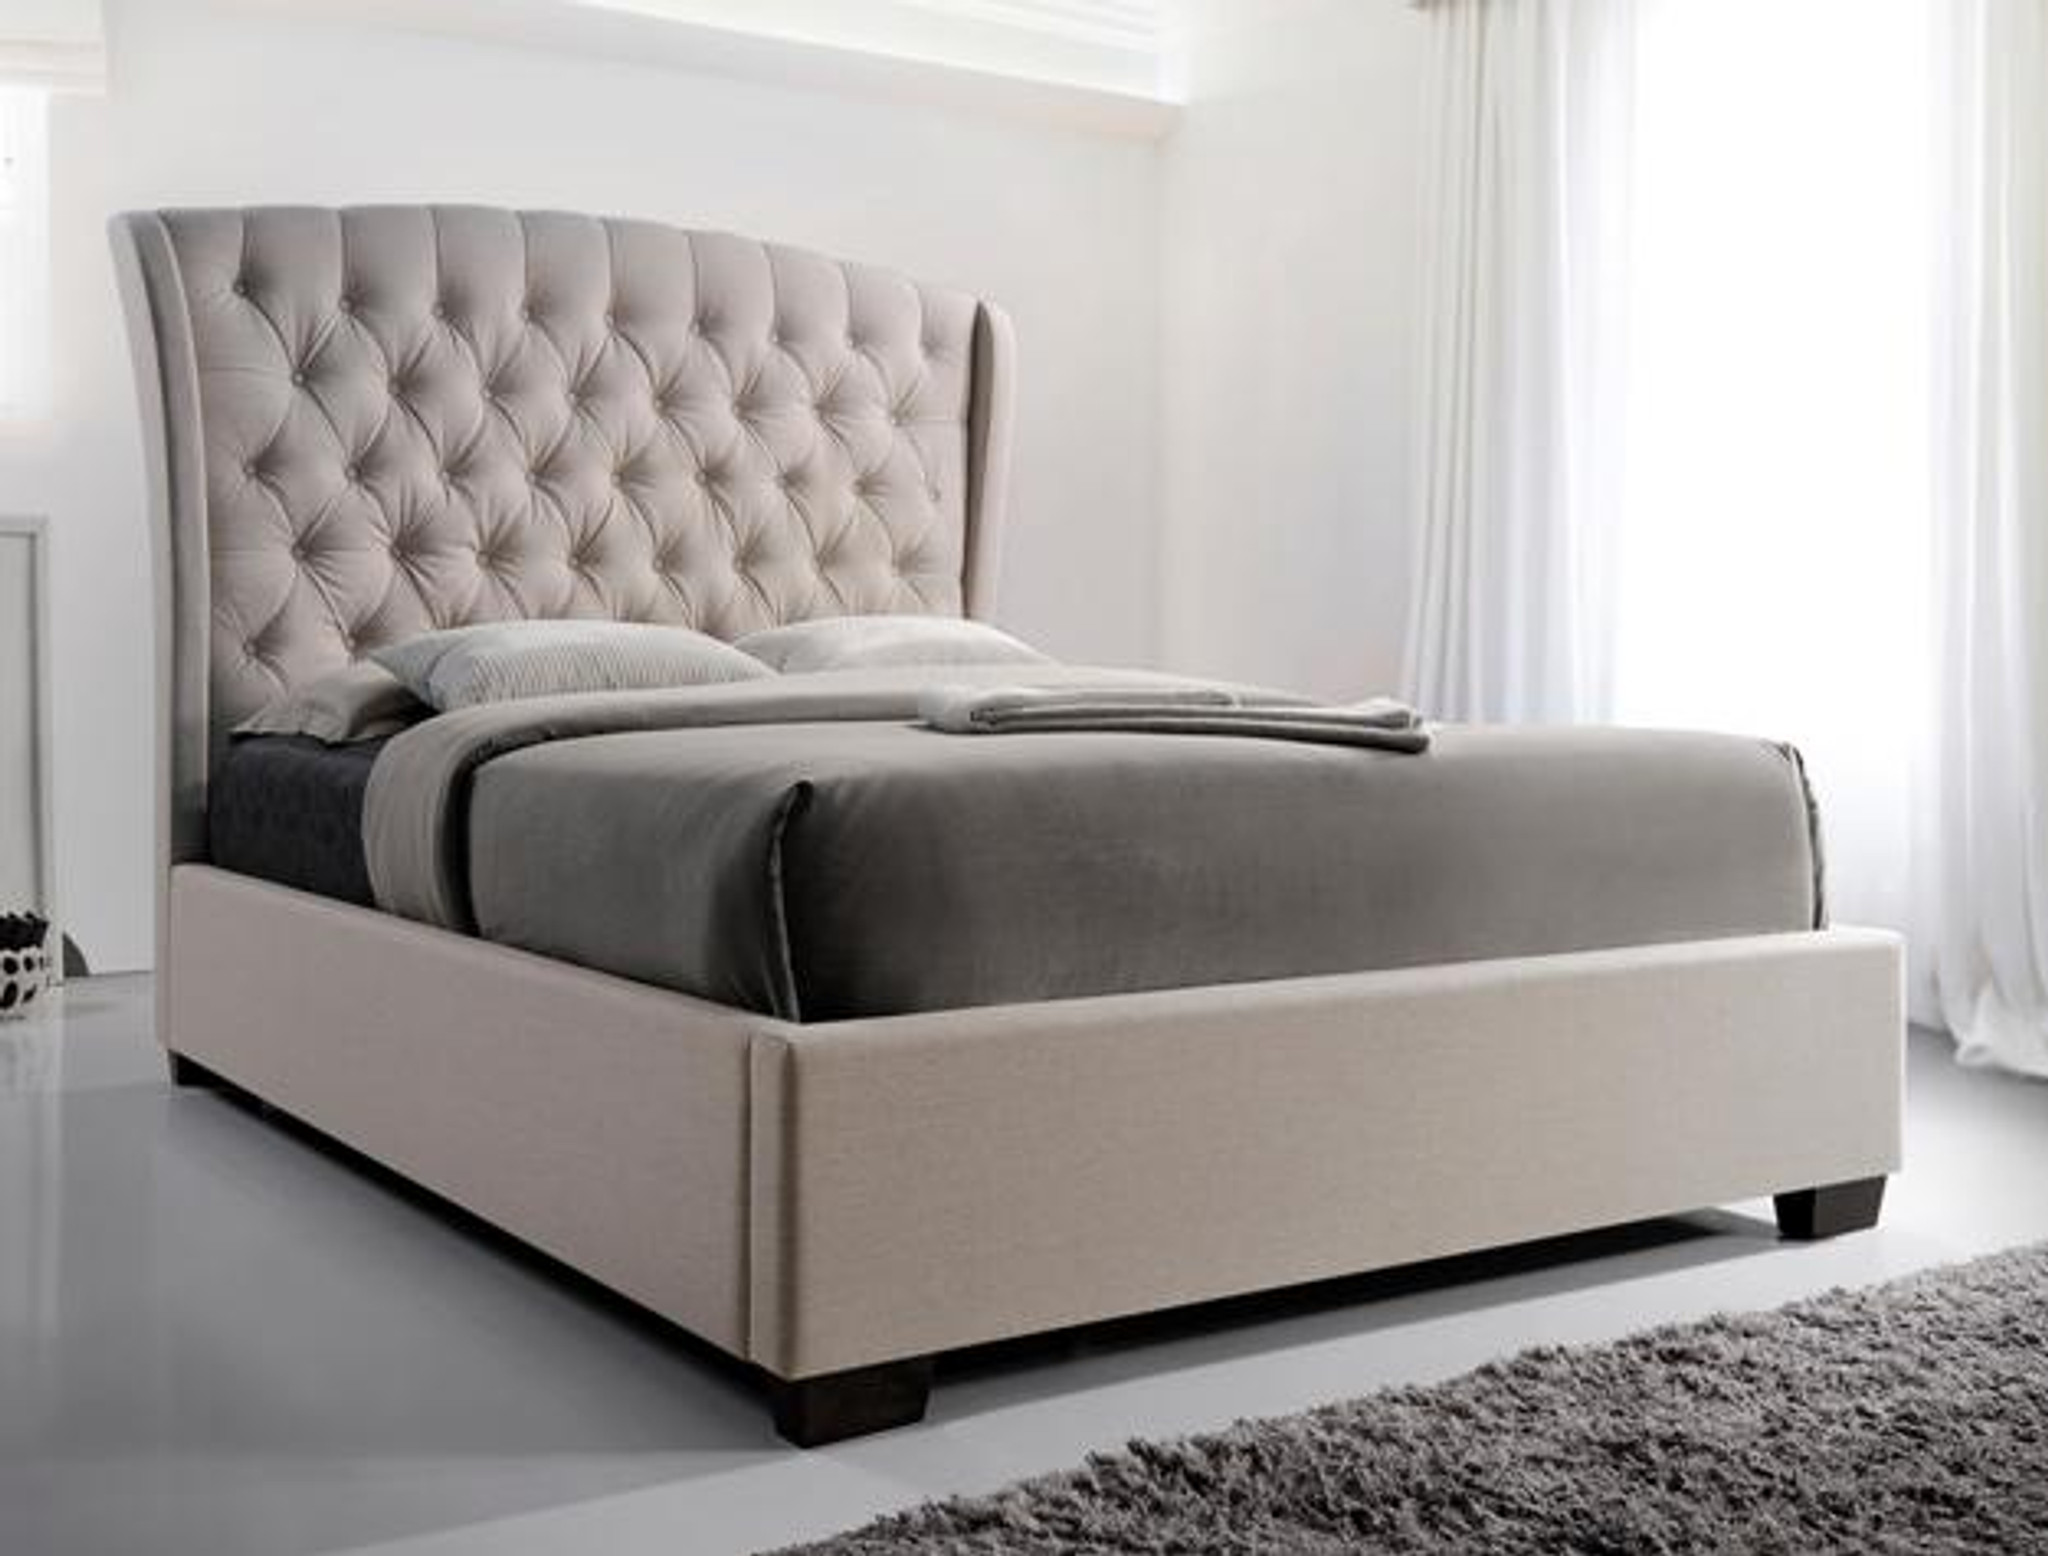 5276 KAITLYN BOTTON TUFTED BED COLLECTION by Crown Mark